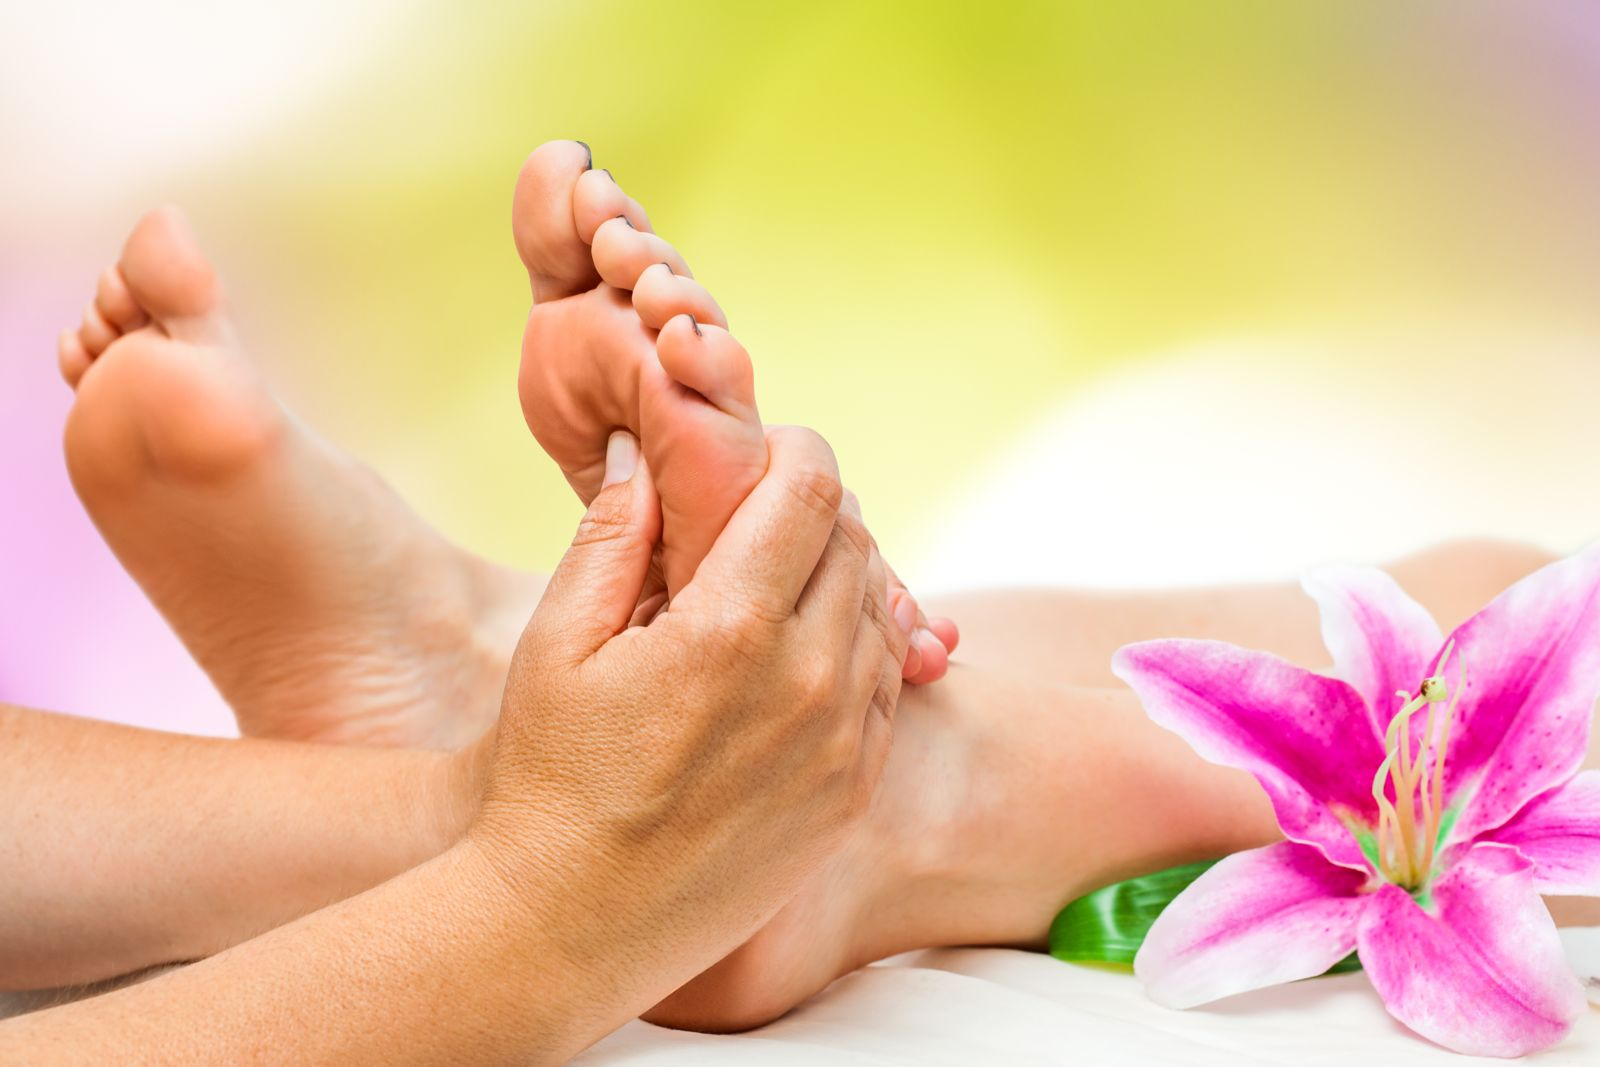 Foot massage is the perfect Mother's Day gift